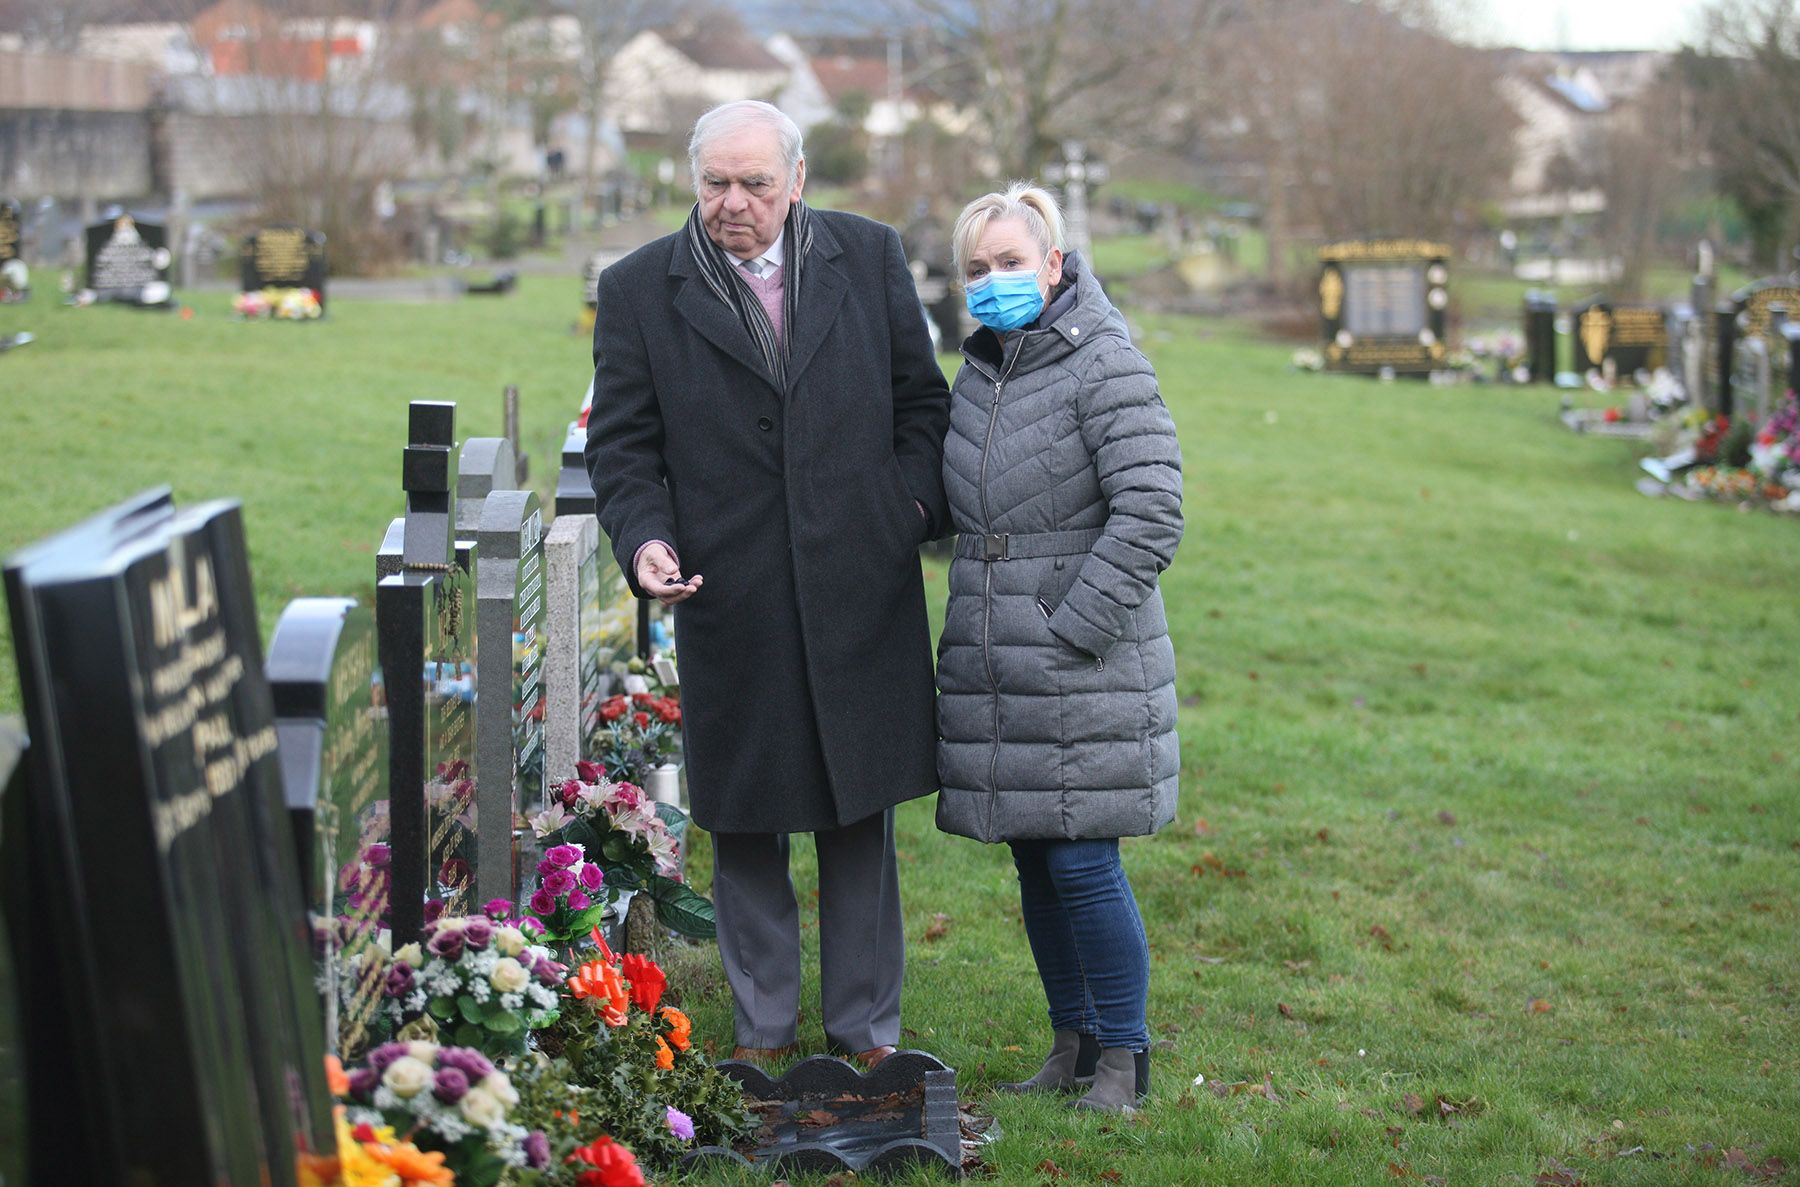 DISTRAUGHT: Michelle Meighan with her father Jim at the family's City Cemetery burial plot